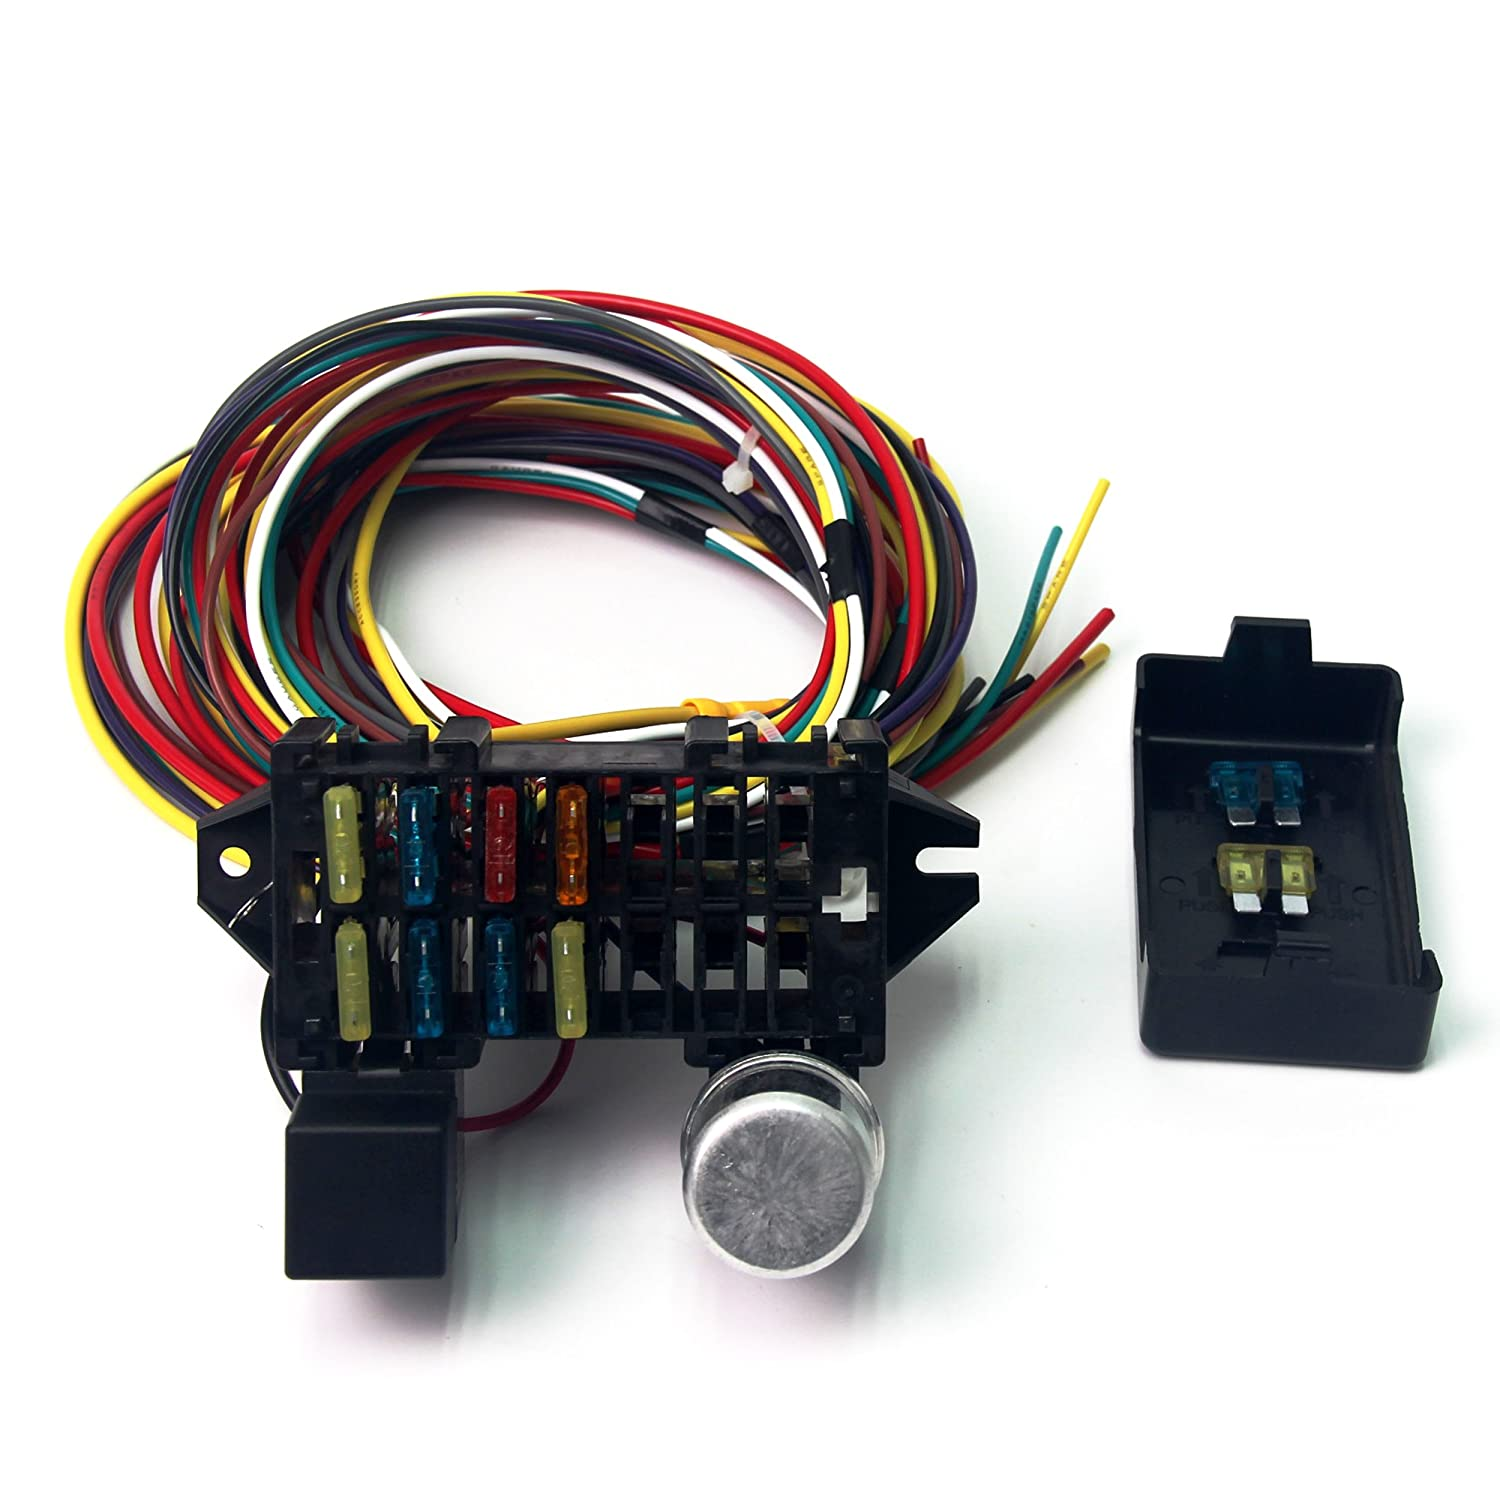 818OhNpuI4L._SL1500_ amazon com wisamic 10 circuit basic wiring harness fuse box hot rod wiring harness universal at panicattacktreatment.co